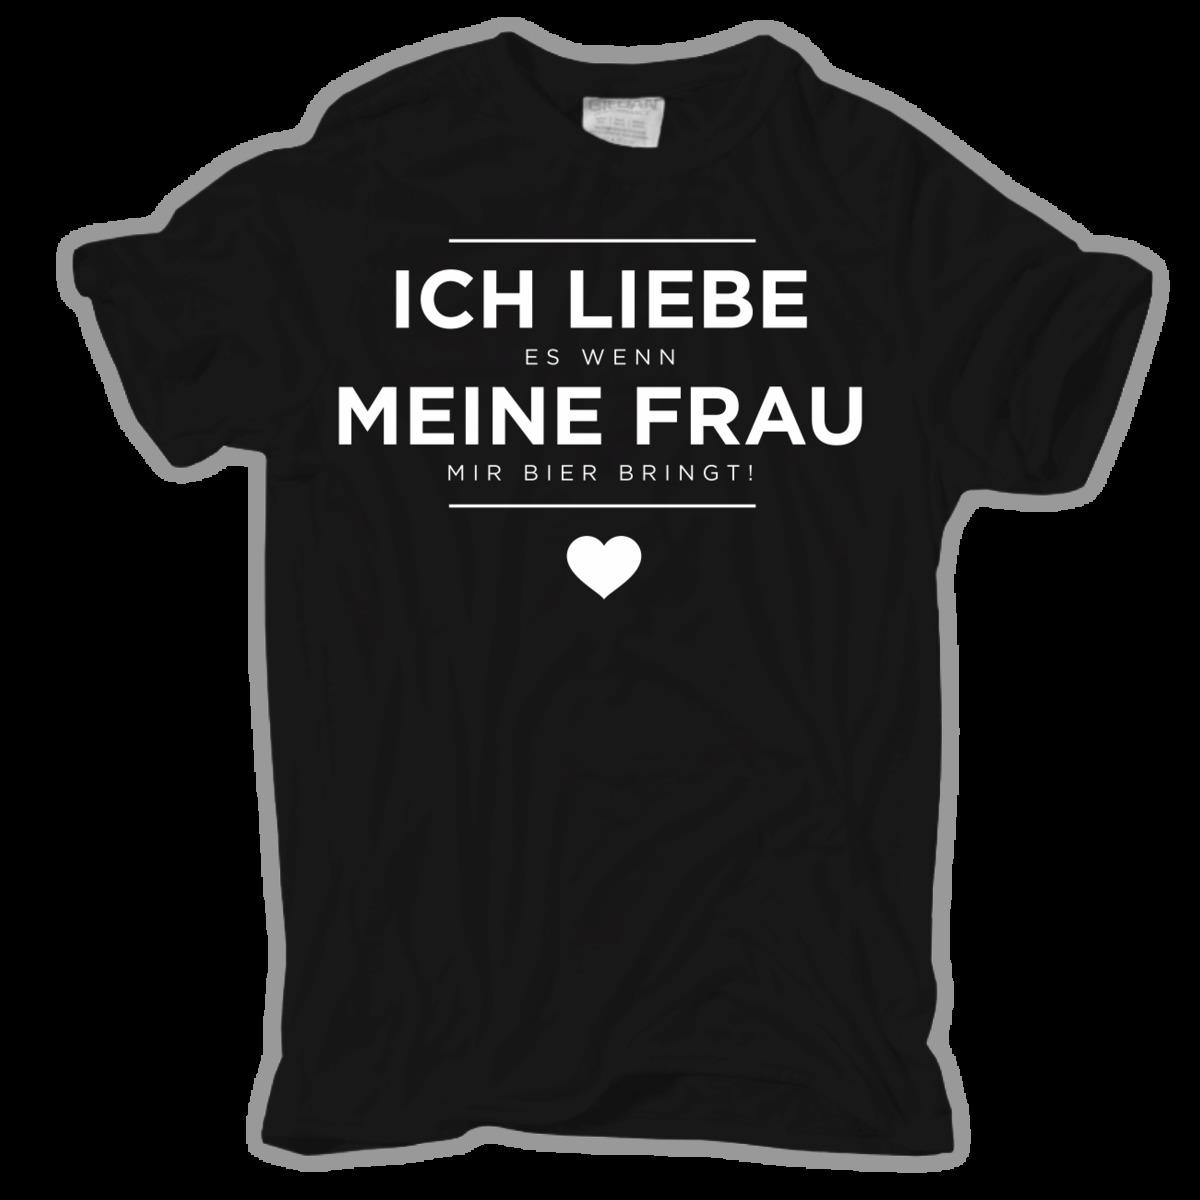 28d49eb9a058c T Shirt ICH LIEBE Es Wenn MEINE FRAU Mir Bier Bringt Vatertag Geschenk  Normal Short Sleeve Cotton T Shirts Animal Funny T Shirts For Sale Awesome T  Shirt ...